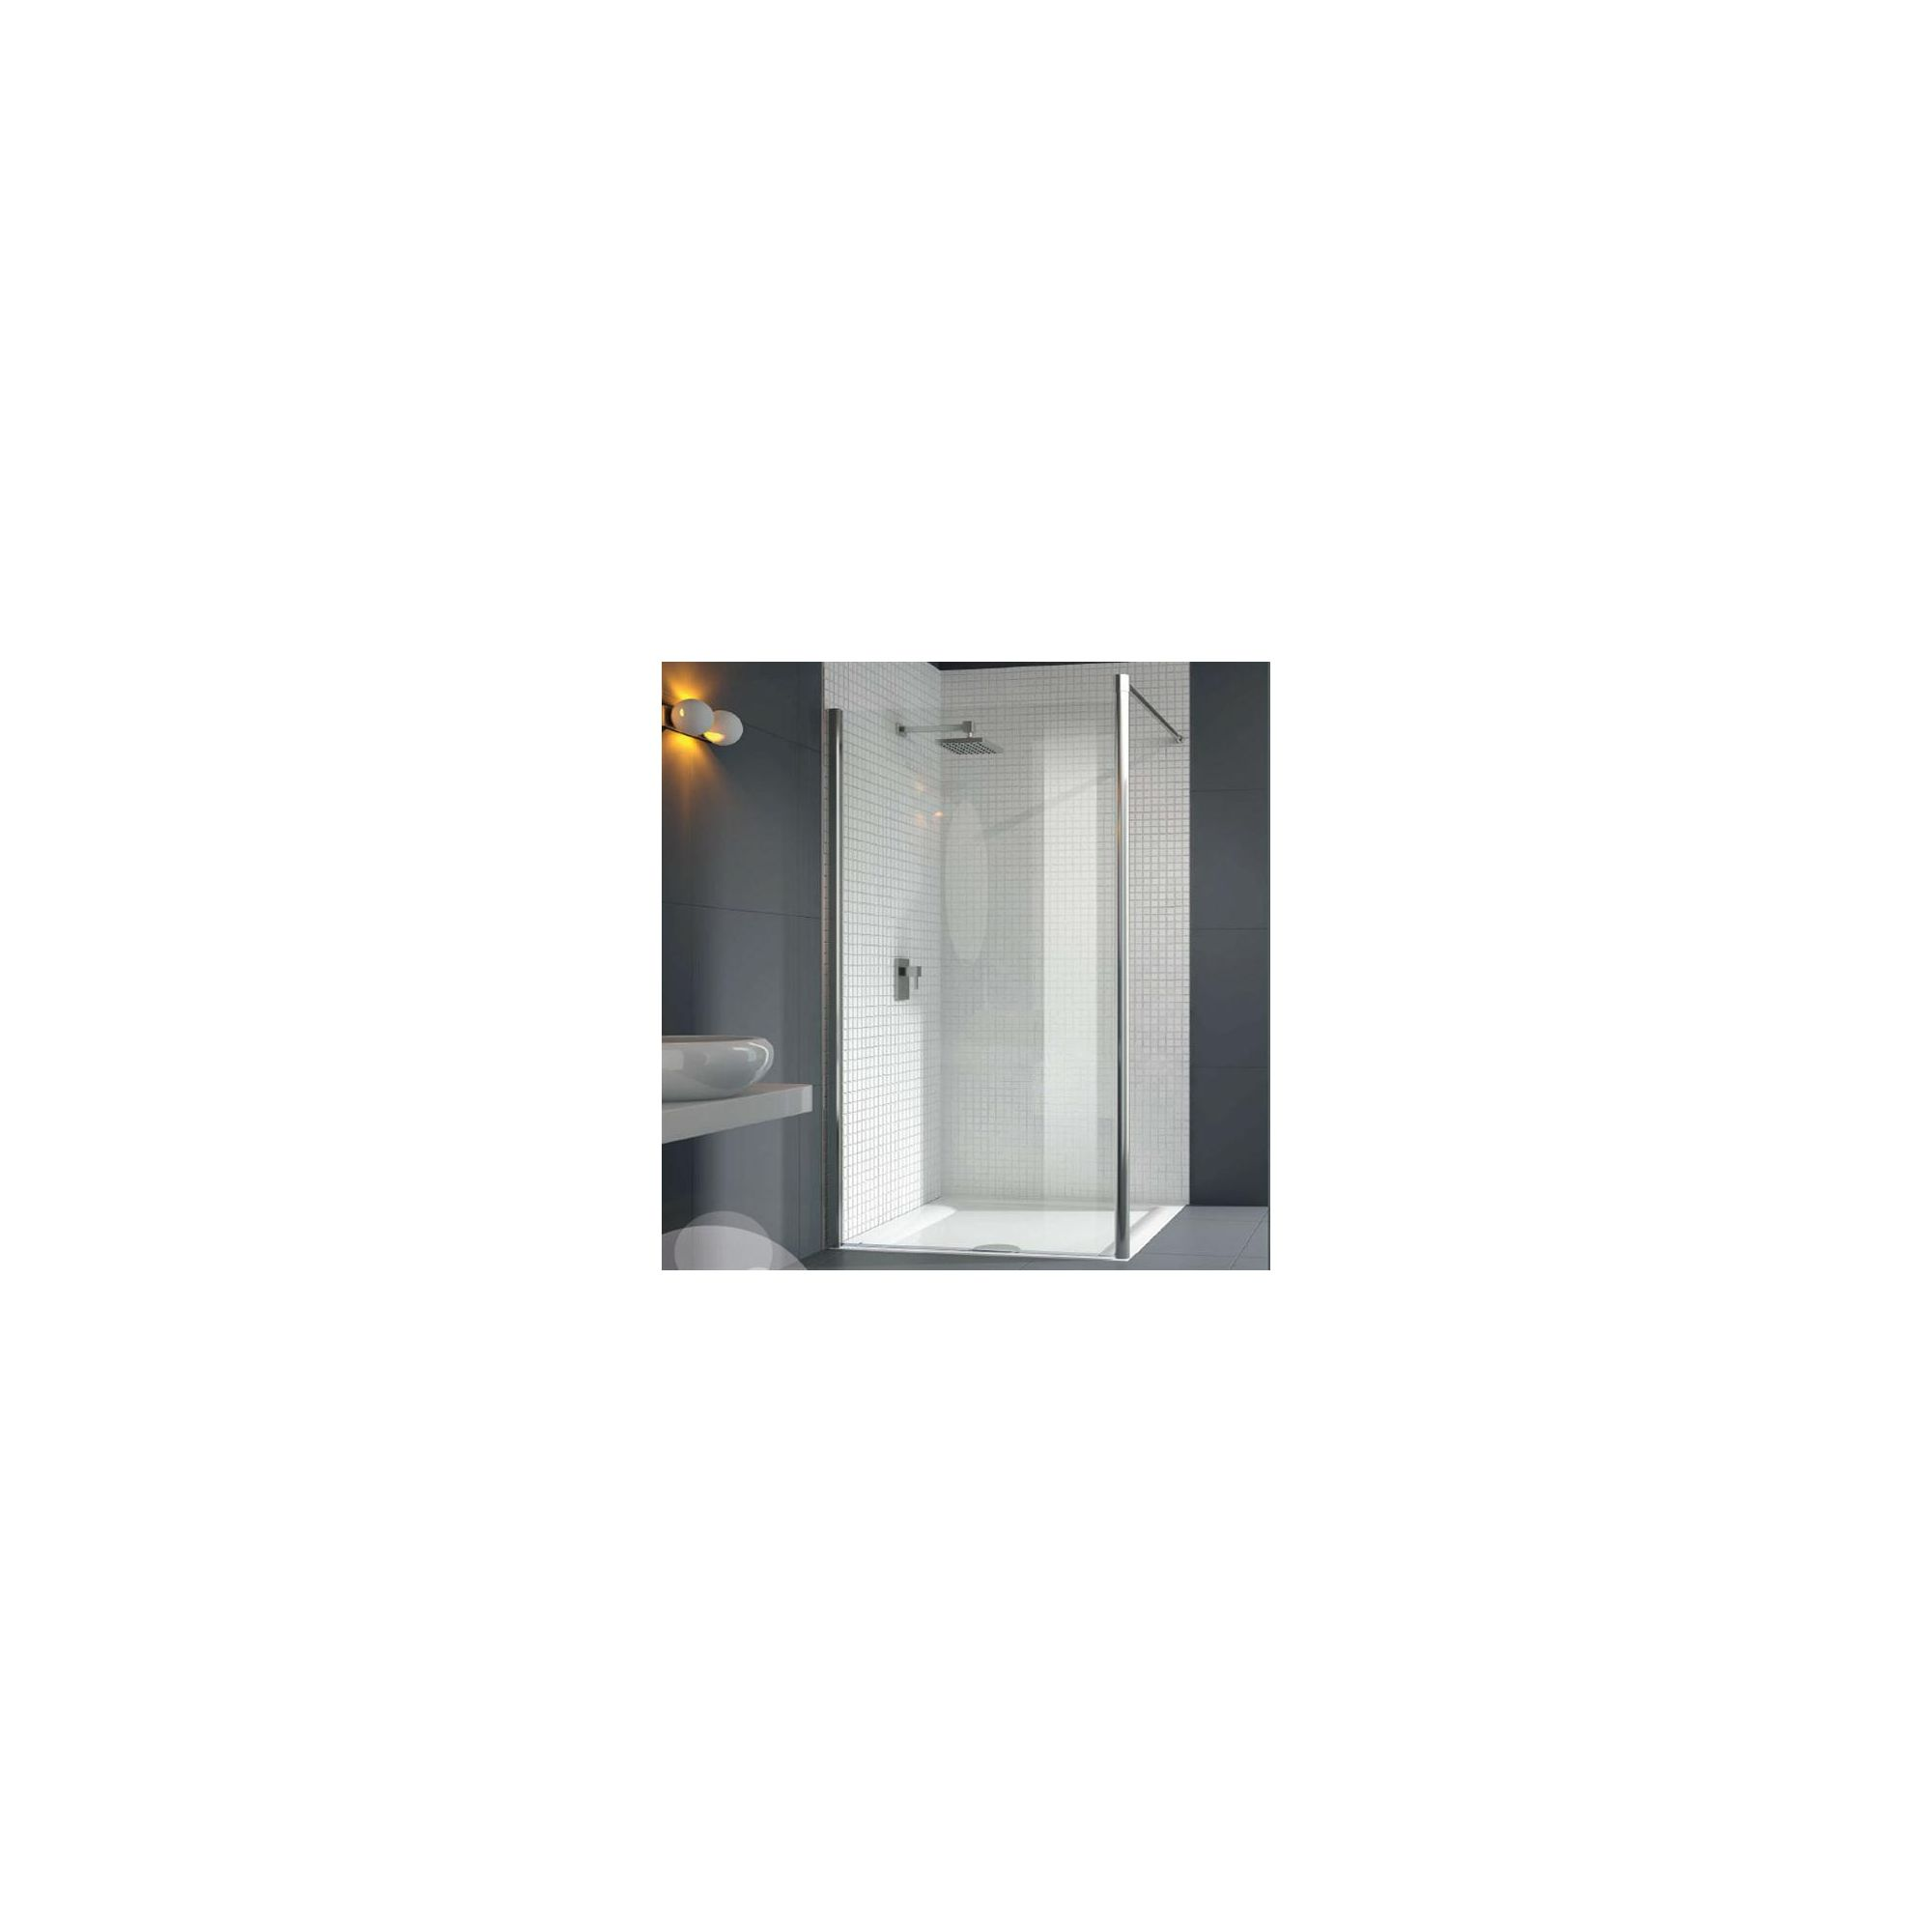 Merlyn Vivid Six Wet Room Shower Glass Panel 800mm Wide with Horizontal Support Bar at Tesco Direct